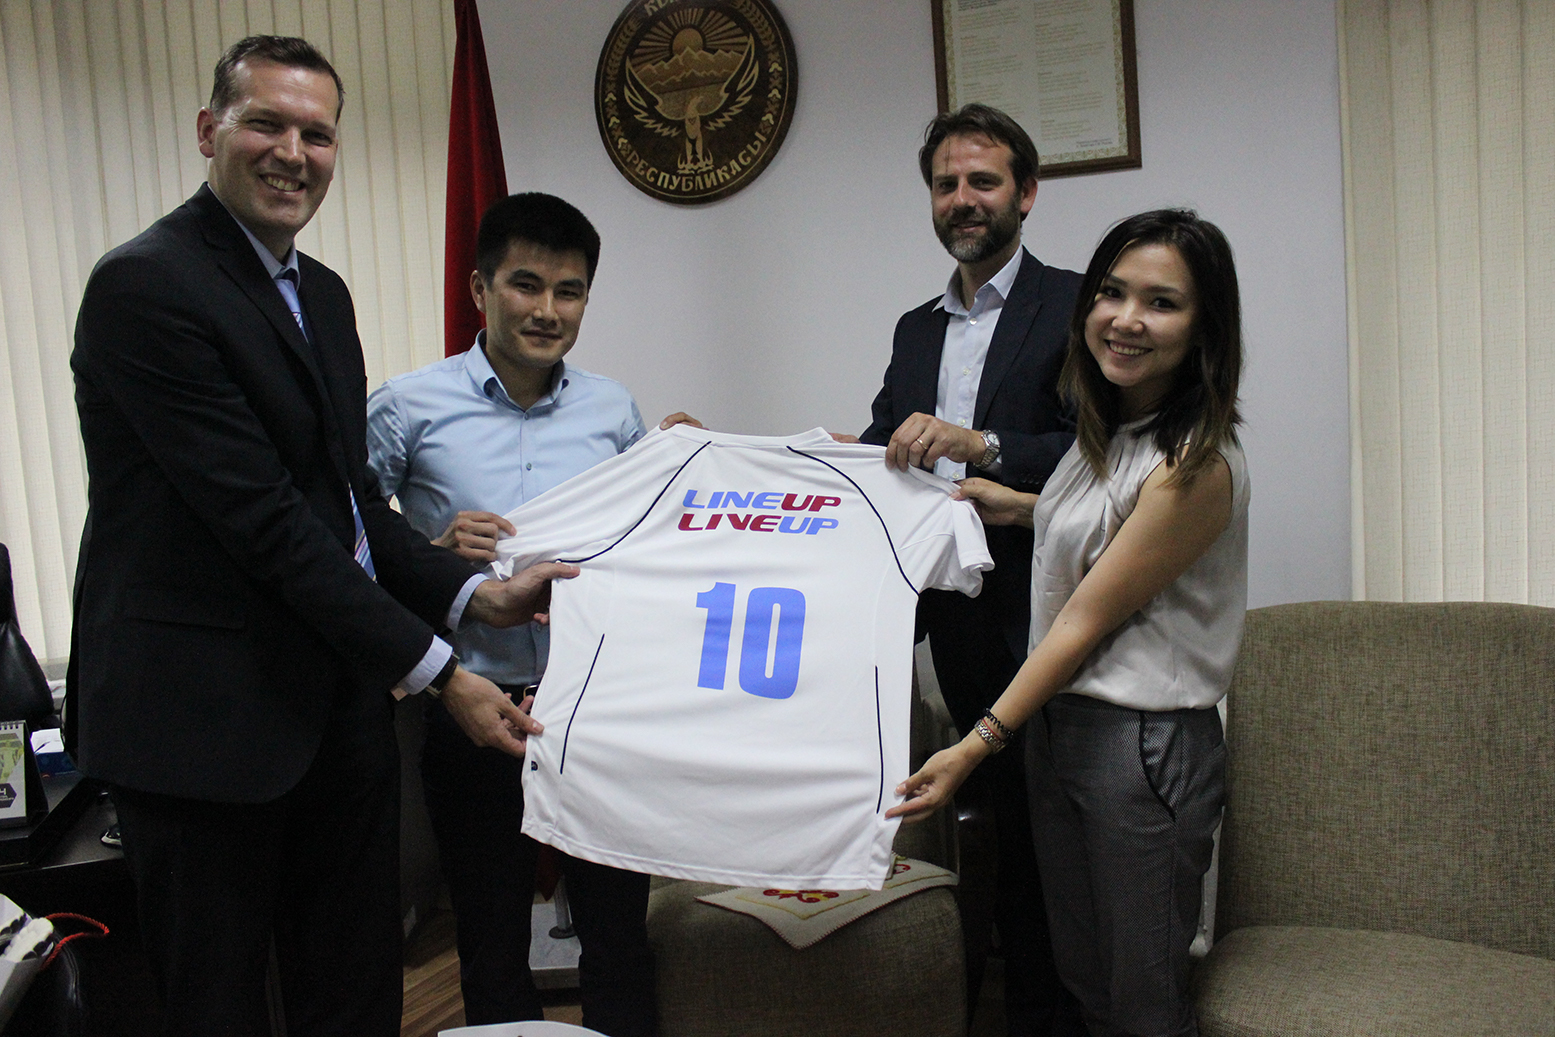 UNODC and Kyrgyzstan team-up to promote sports for youth crime prevention